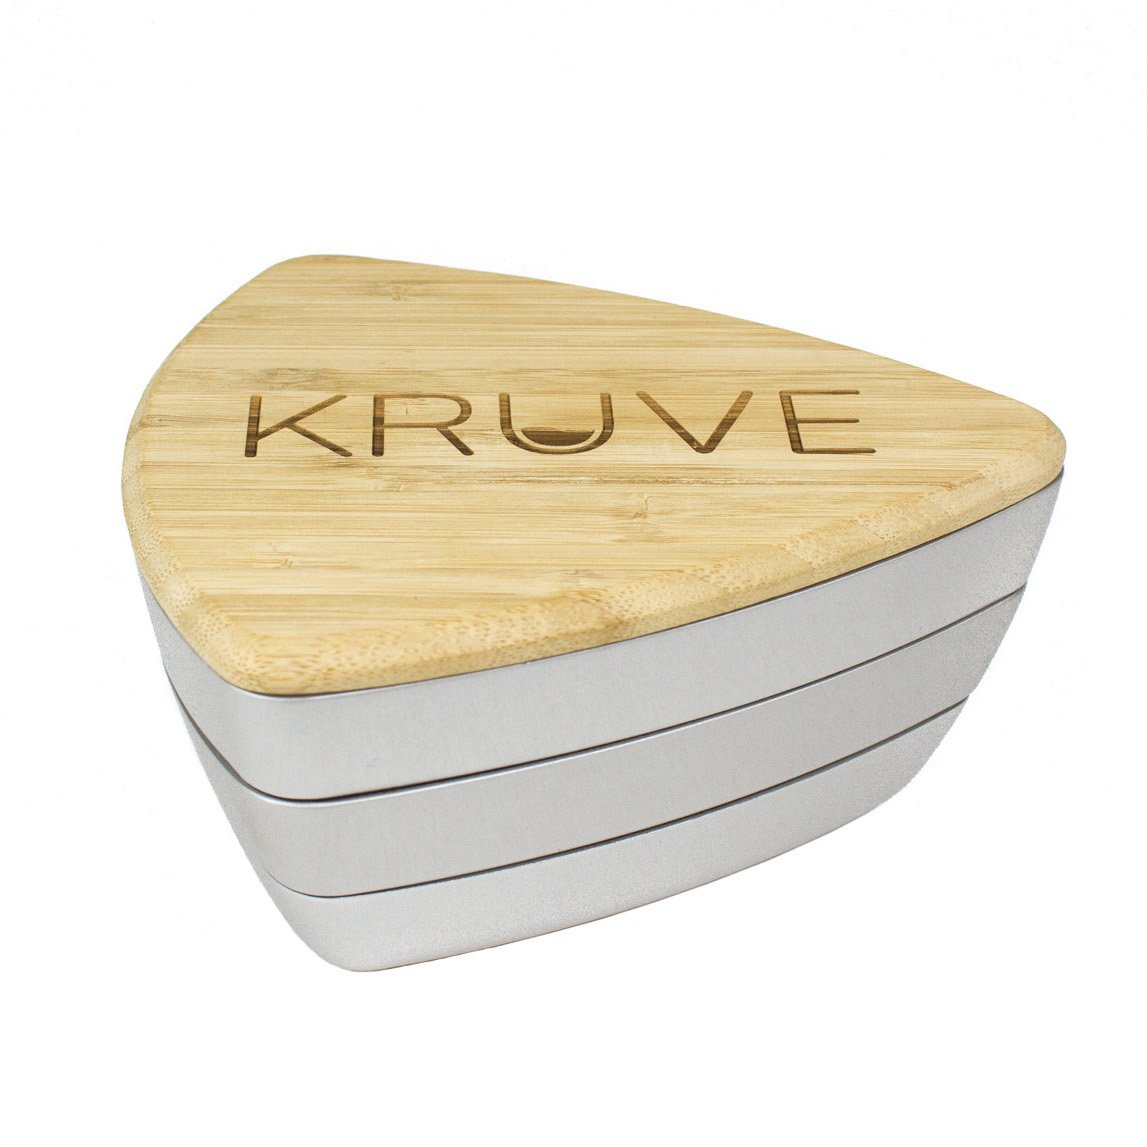 KRUVE Sifter Twelve Helps Accurately Measure, Calibrate, Refine Coffee Grinds, Great for Cafes, Baristas, Or Home Brewers, 12 Interchangeable Sieves, Silver